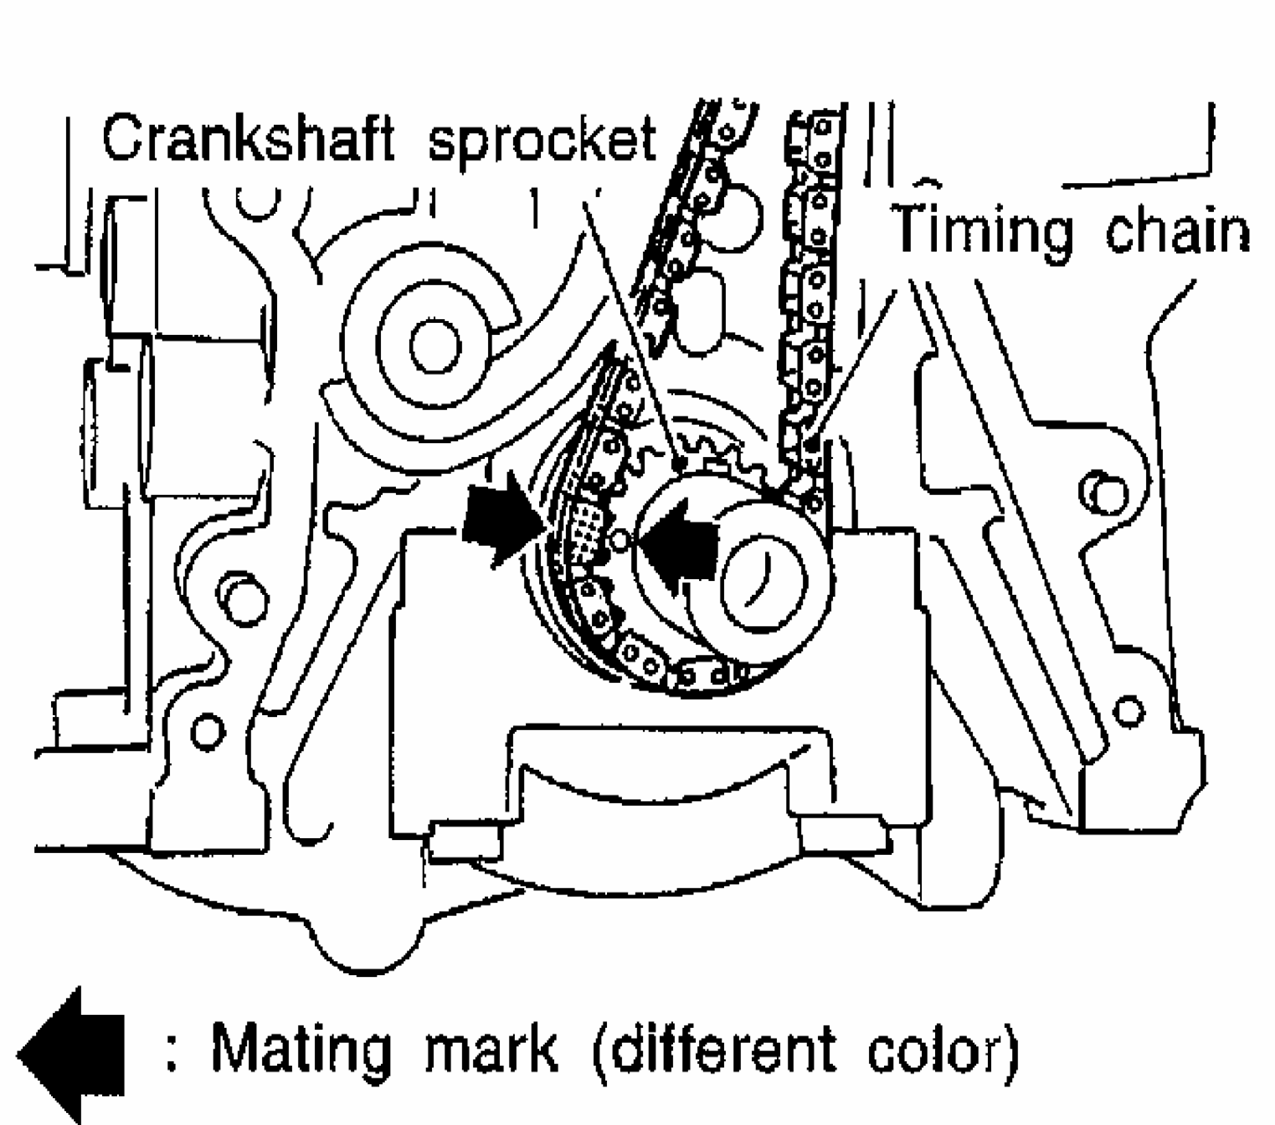 Chevy Cobalt Speaker Wiring Diagram further 3wuqi 1 Torque Wrench Value Head Cylinder Nissan further 2002 Bmw M3 Transmission Line Diagram Pdf in addition P0712 2010 toyota camry in addition How To Change Shift Interlock Solenoid 2003 Buick Century. on value of 2010 nissan sentra